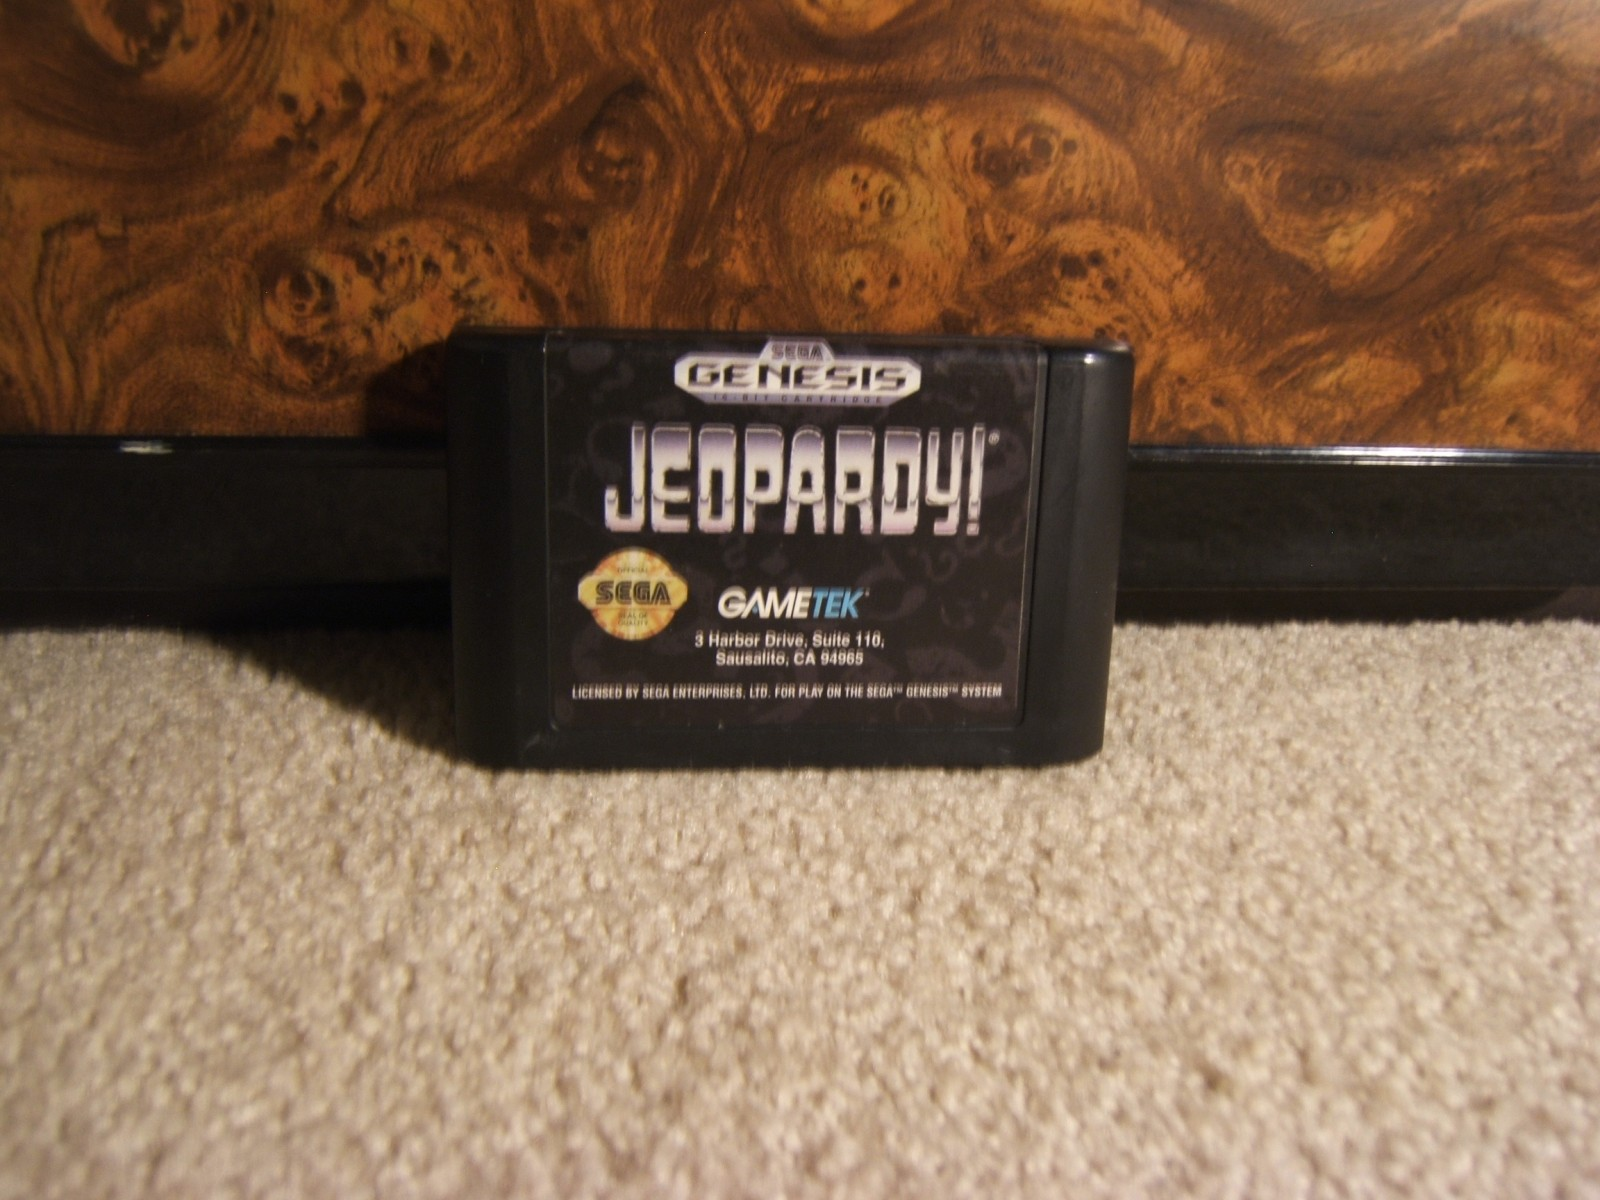 Jeopardy (Game Tek)